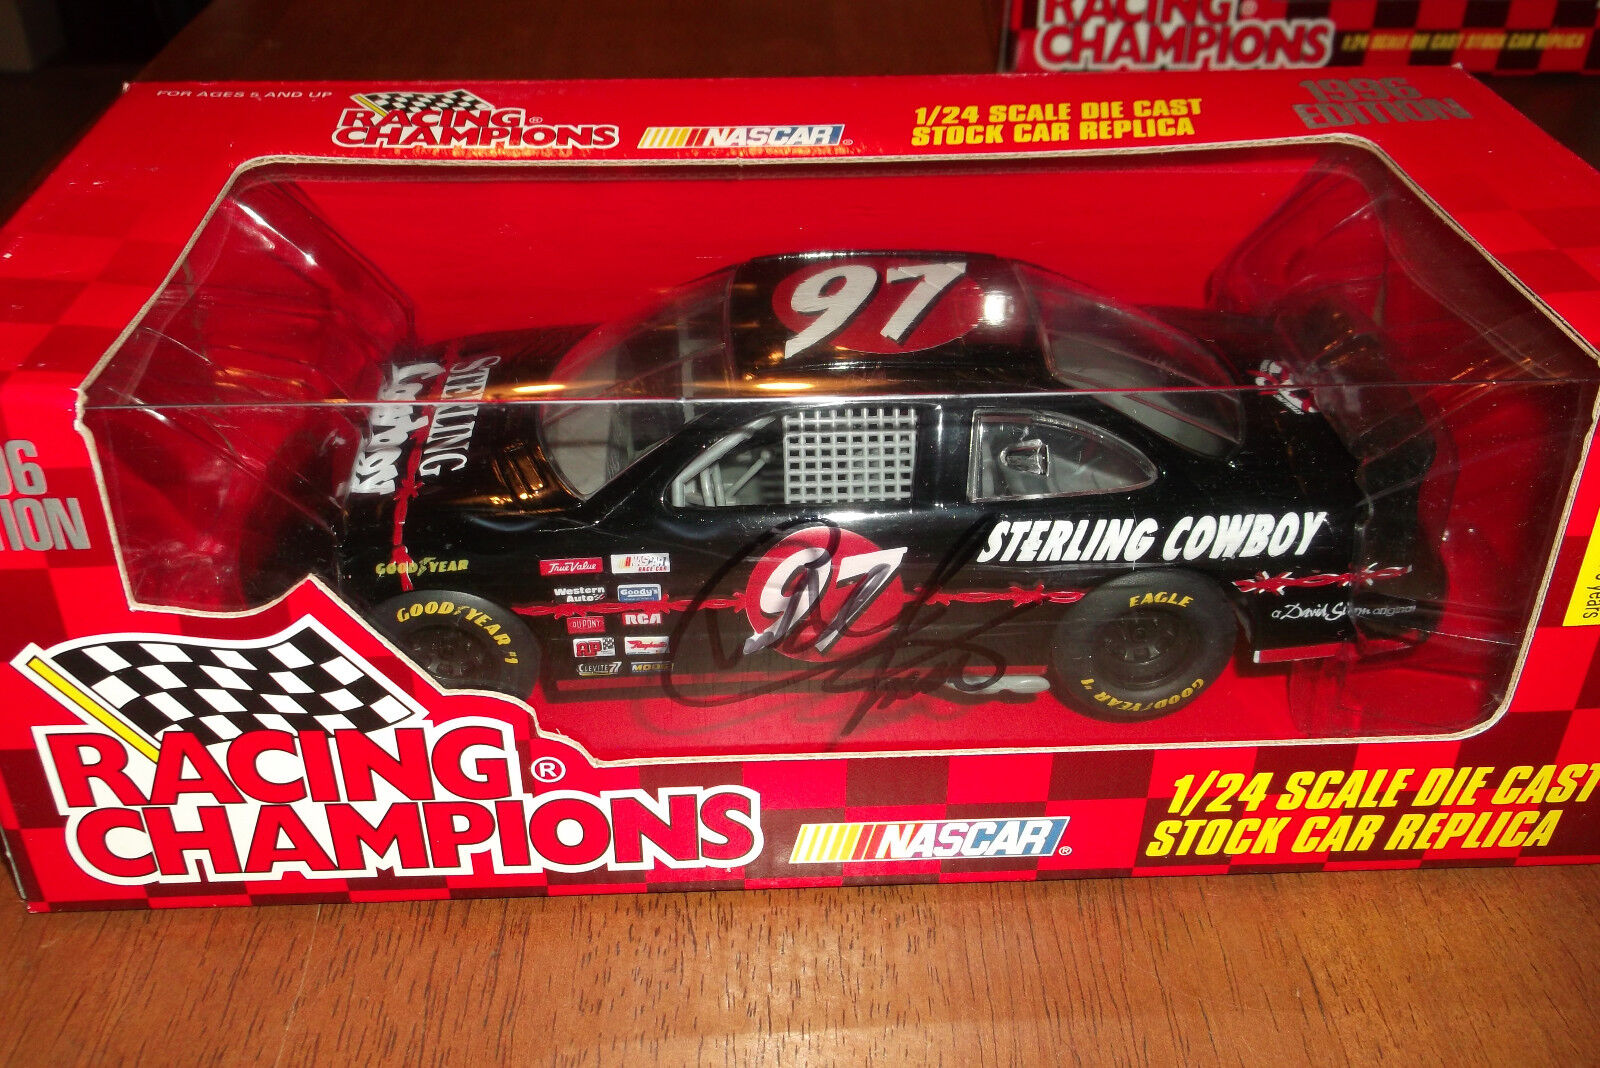 CHAD LITTLE AUTOGRAPHED STERLING COWBOY 1 24 SCALE RACING CHAMPIONS 1996 (46